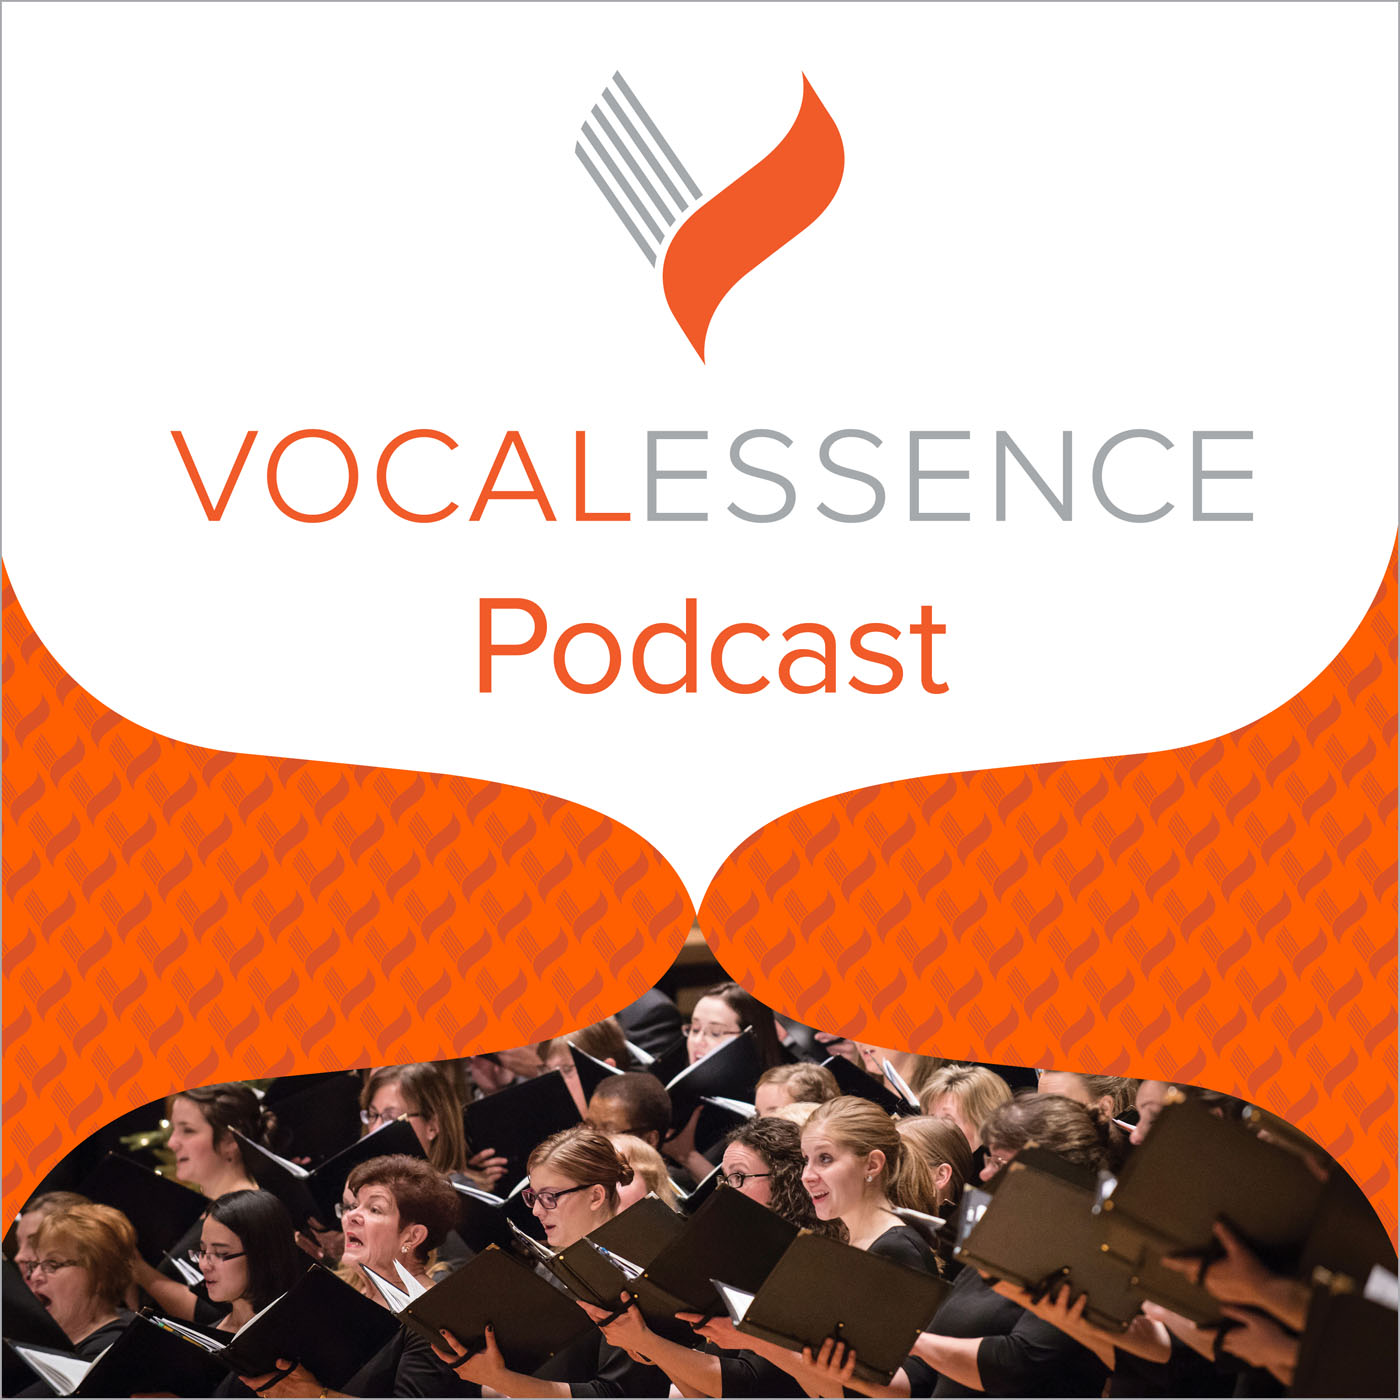 VocalEssence